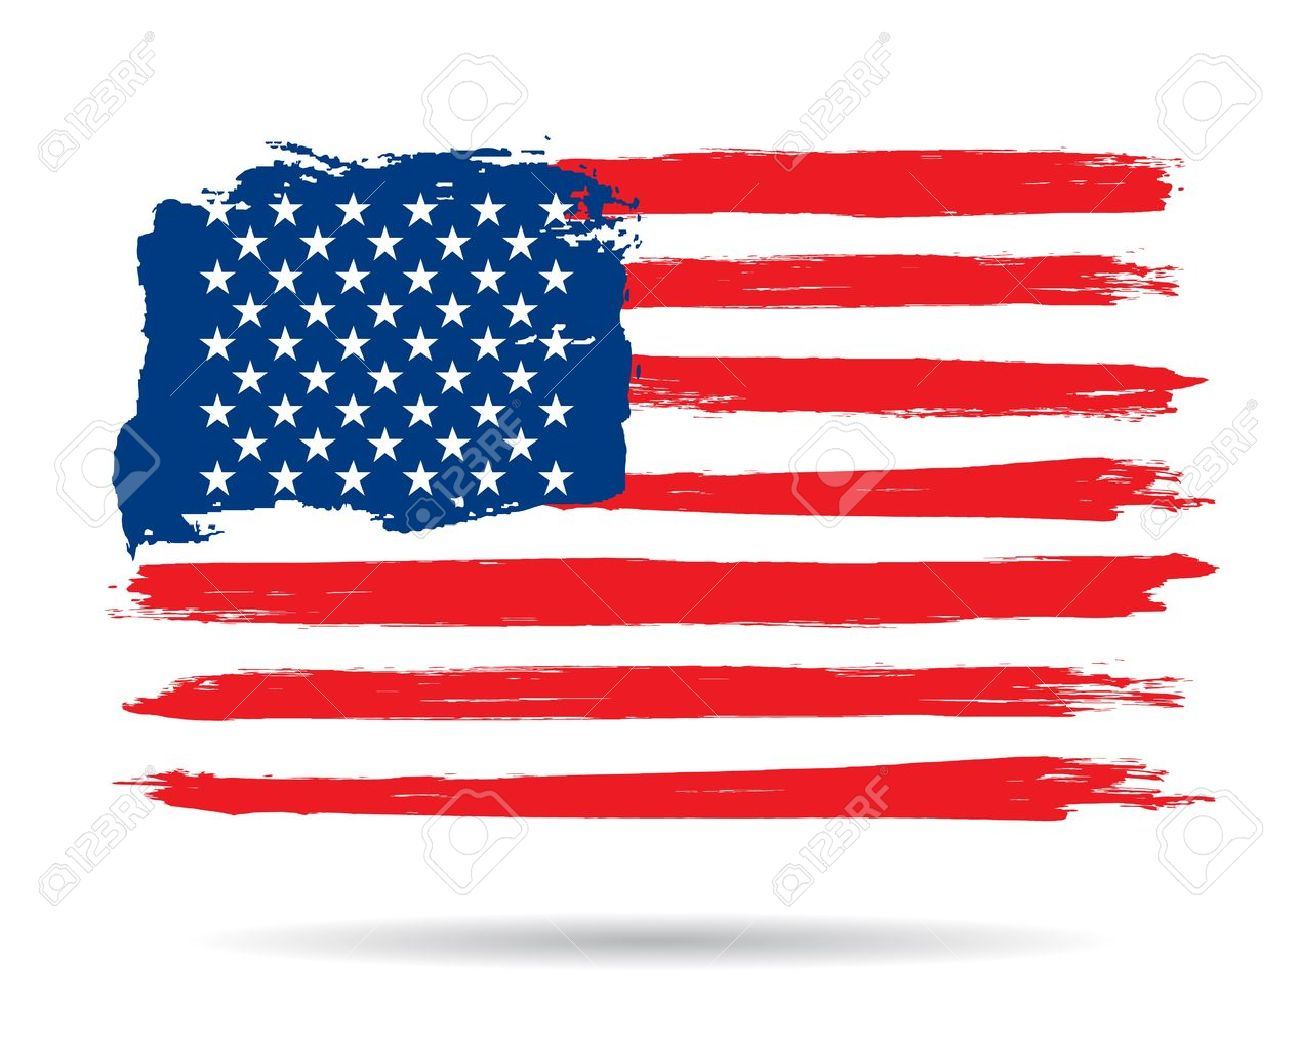 Grunge Brush Stroke Watercolor Of American Flag Vector Illustration Royalty Free Cliparts Vectors And Stock Illustration Image 17177518